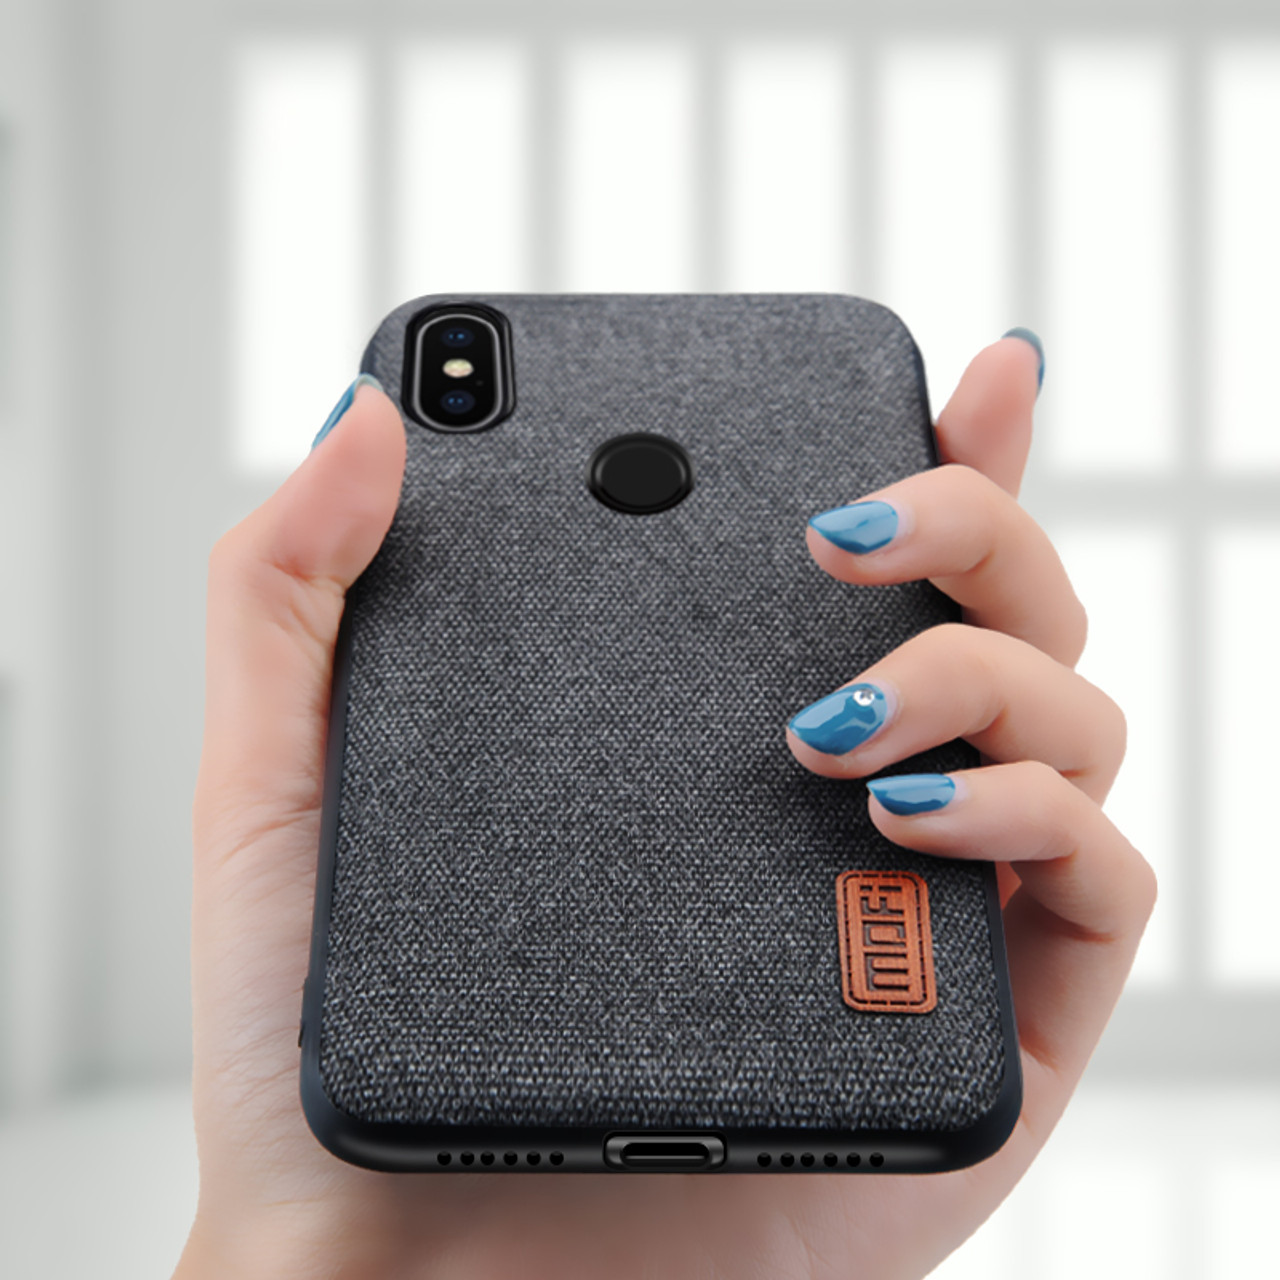 d6003ef73b4 ... Xiaomi Redmi Note 5 Pro case cover note5 global version back cover  silicone edge fabric case ...